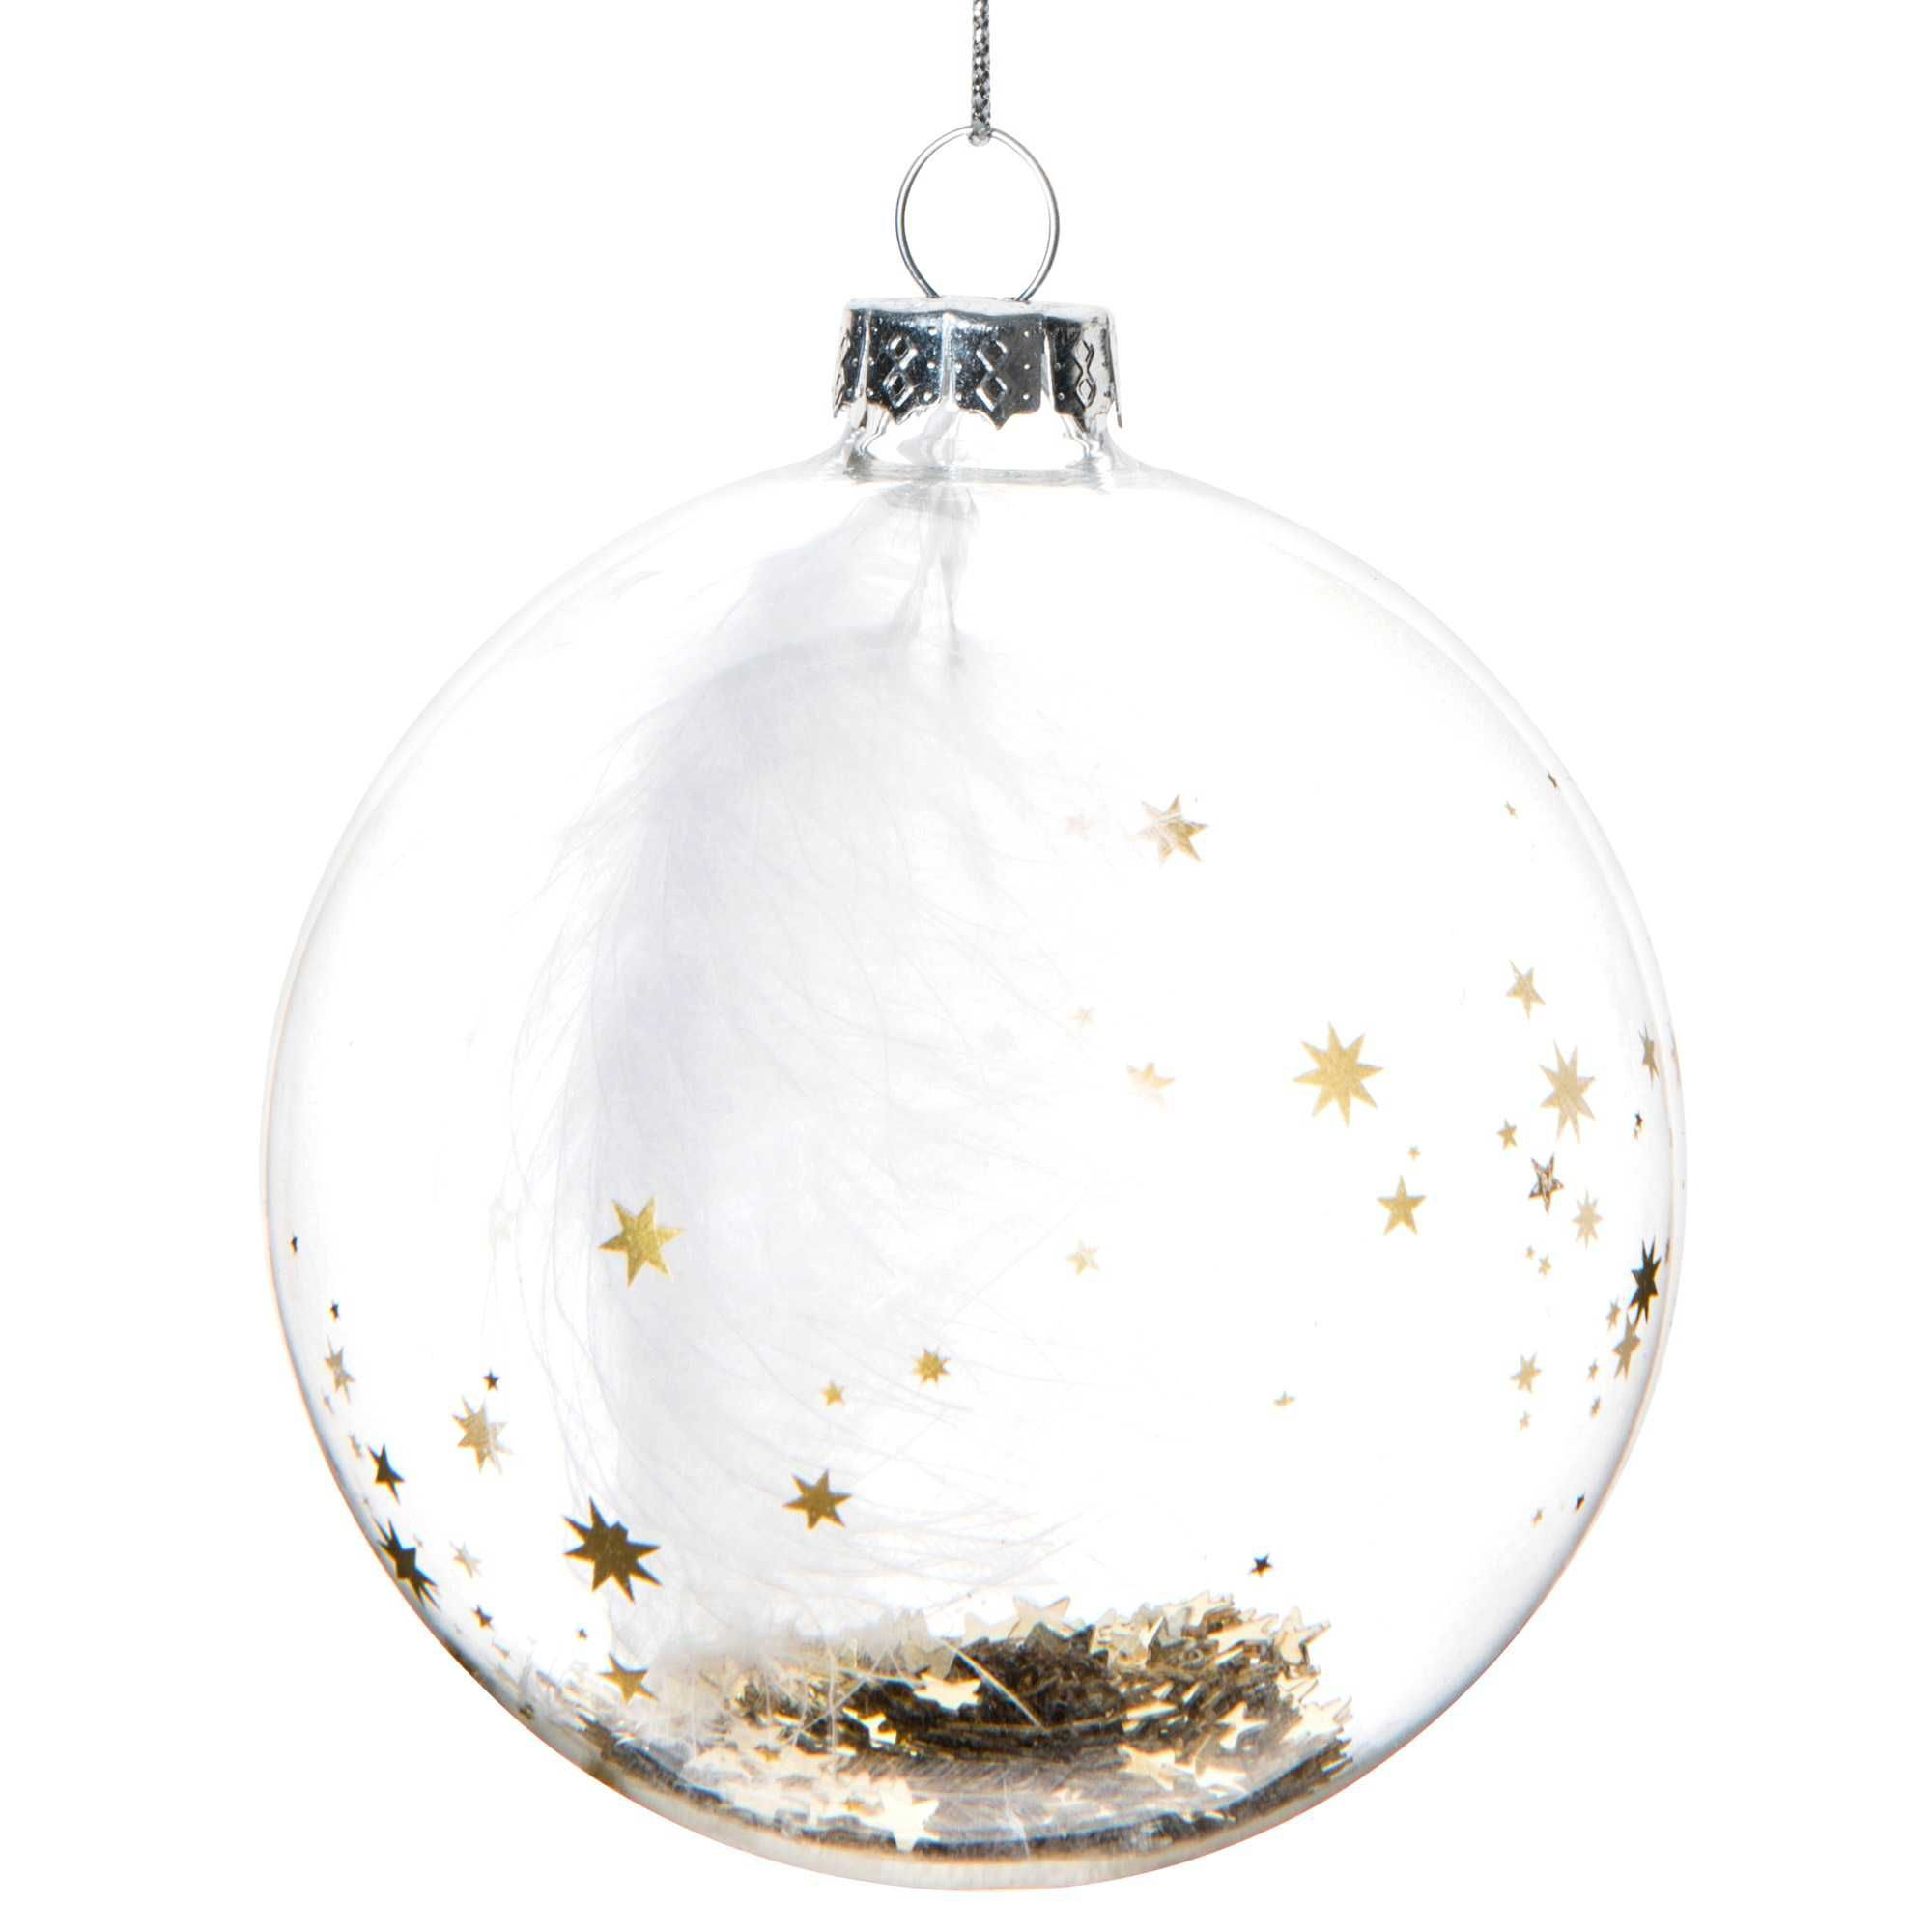 Boule de no l transparente en verre 8 cm starry night for Boules de noel maison